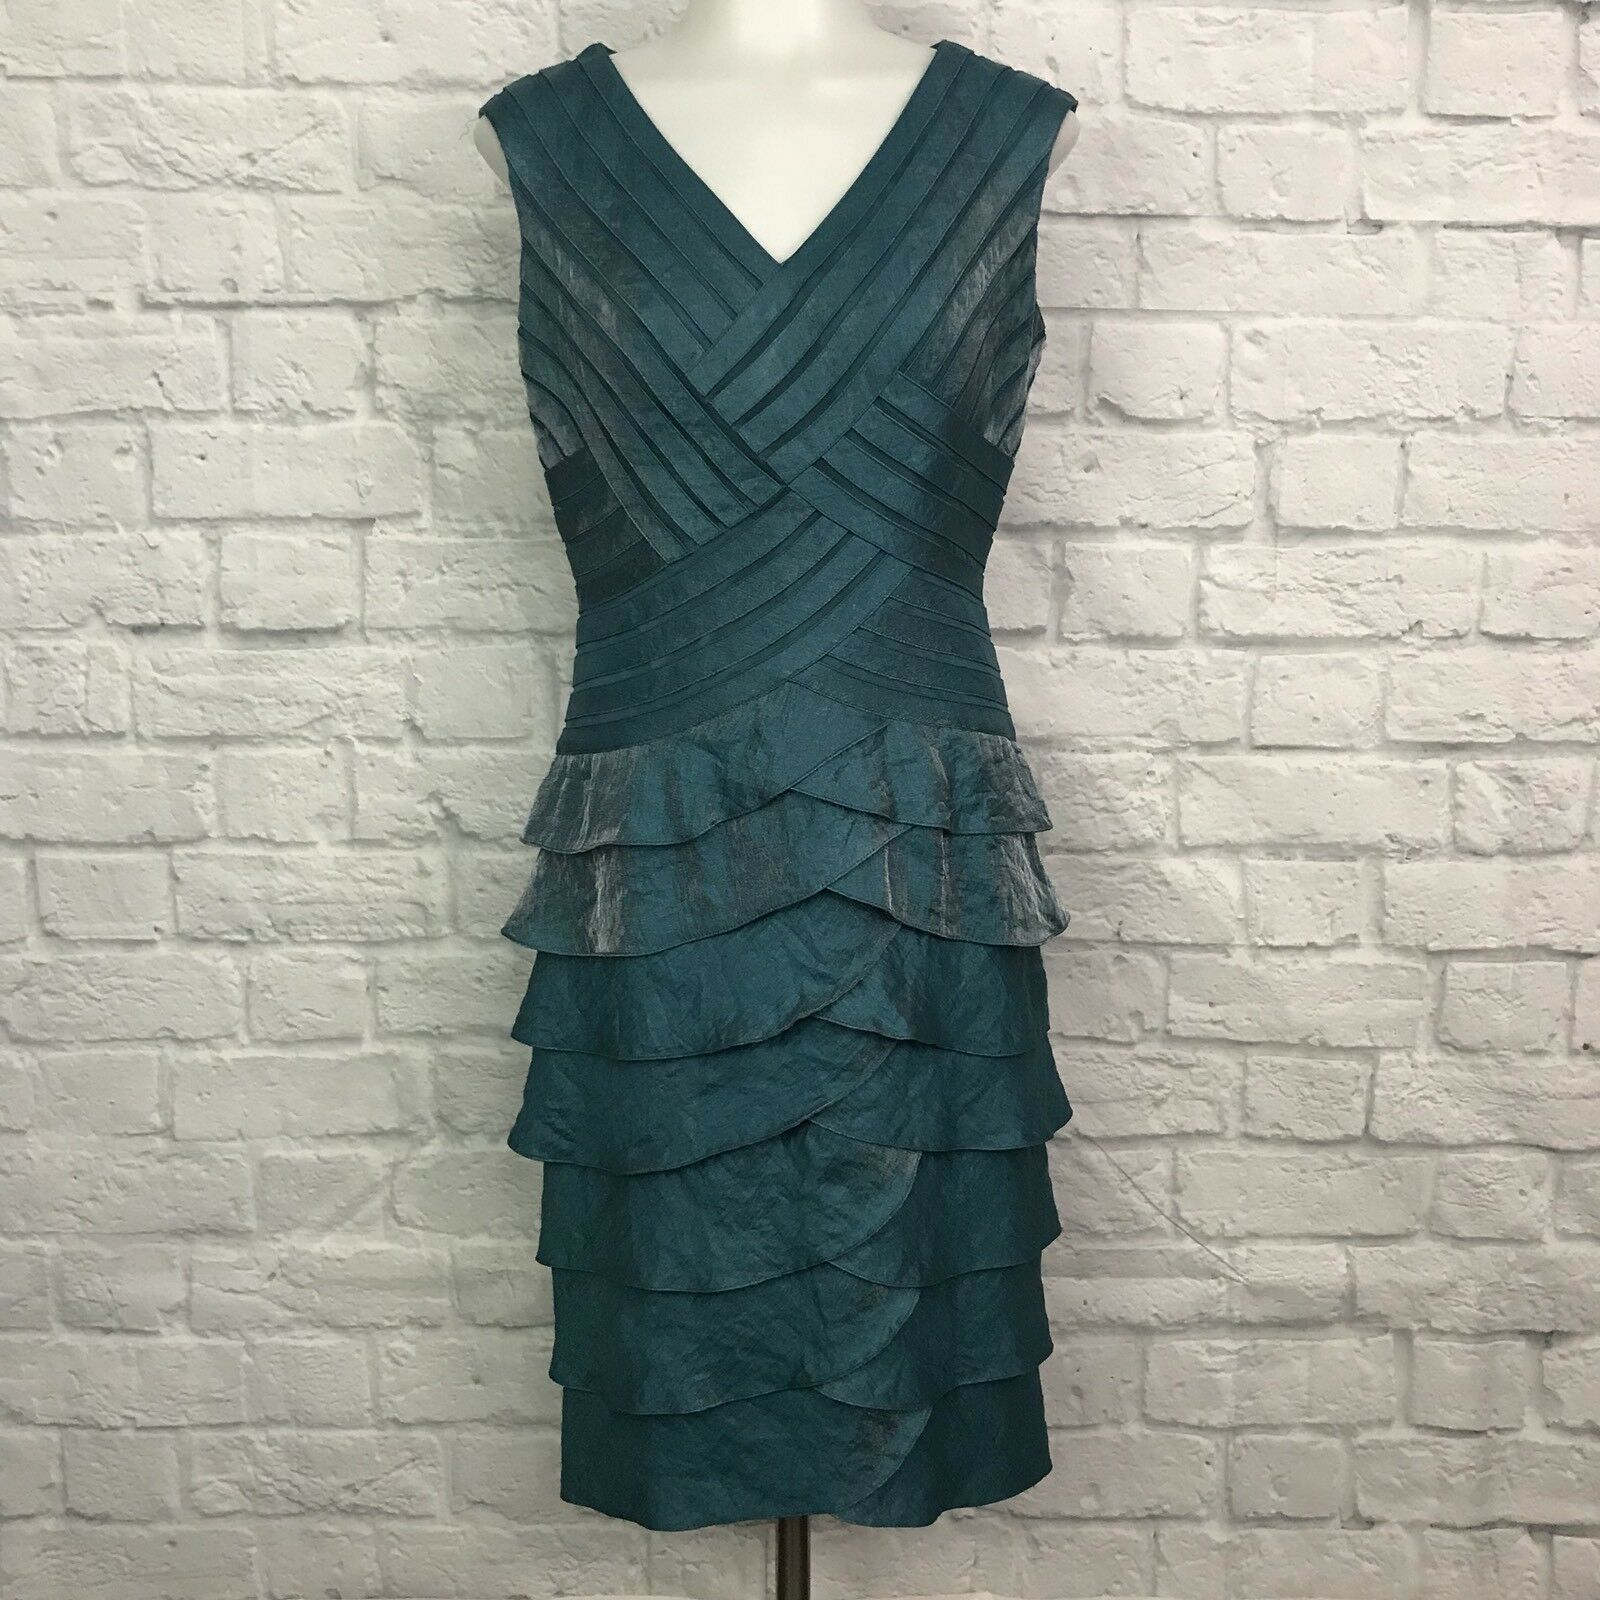 Adrianna Papell Women's Size 4 Sheath Dress bluee Sleeveless